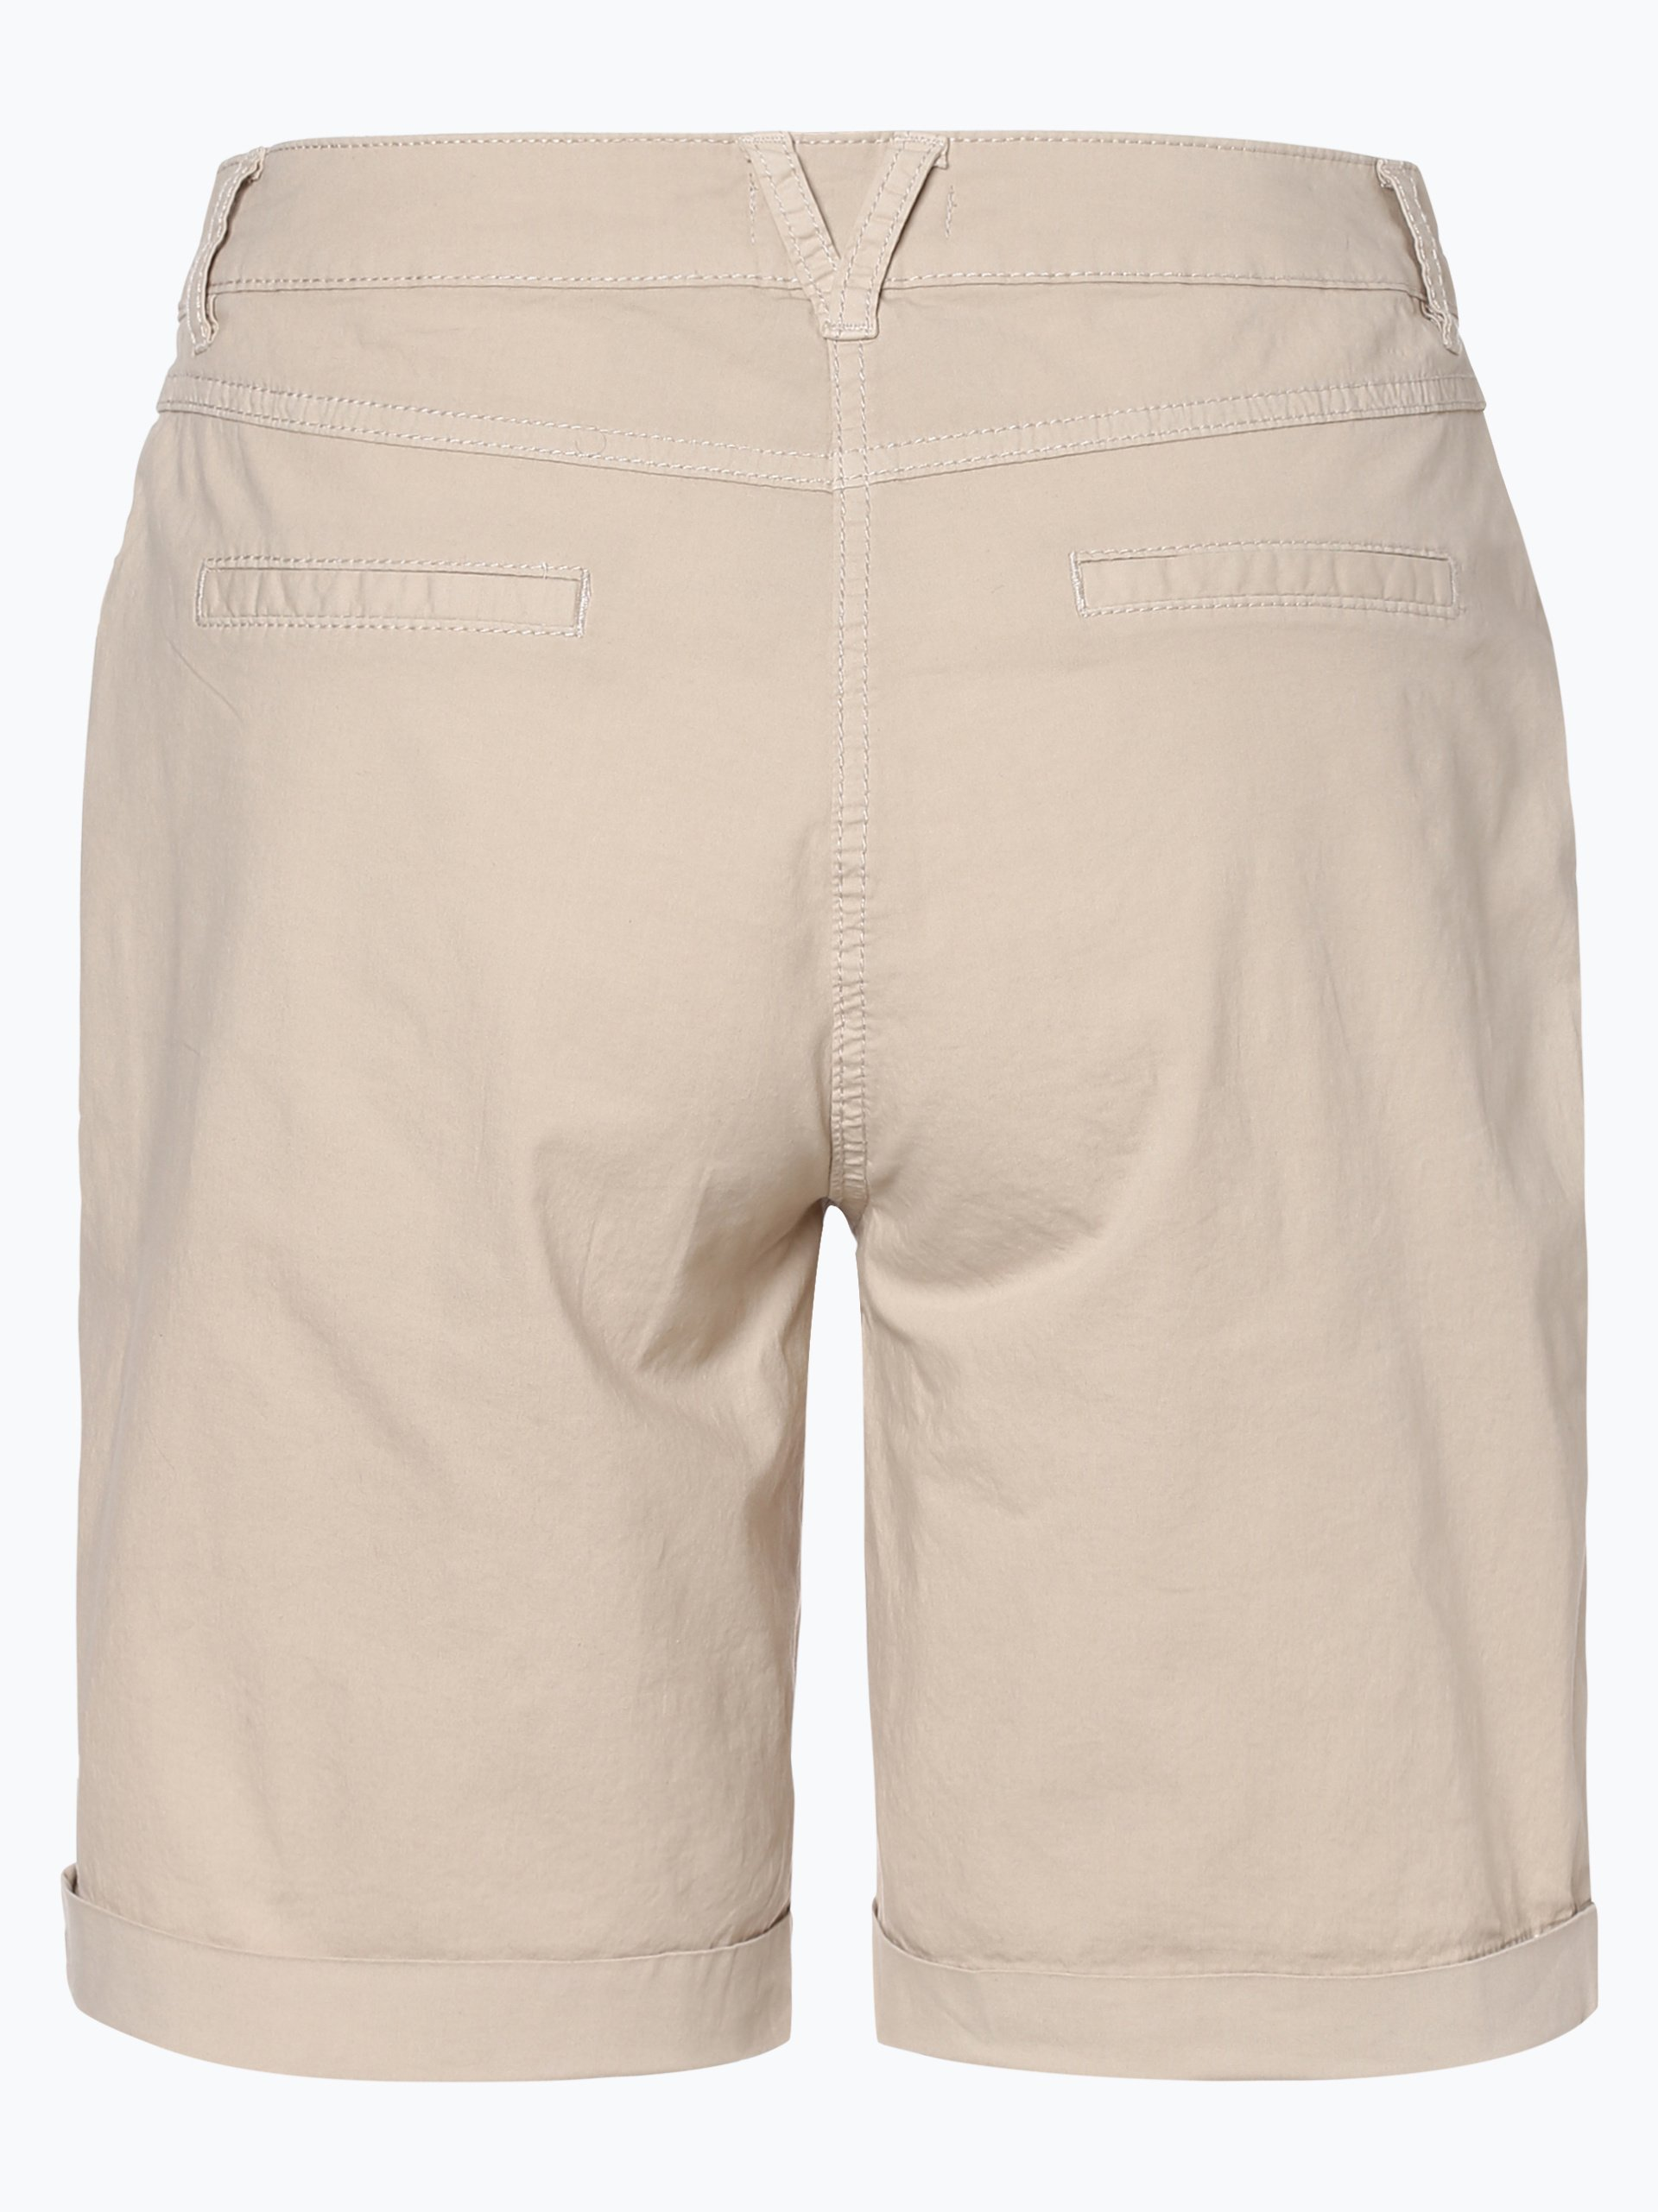 Franco Callegari Damen Shorts